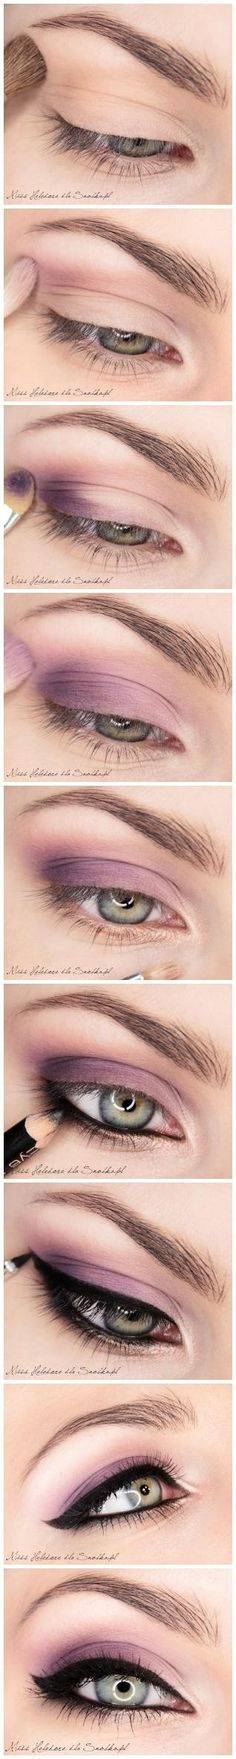 wedding eyes, cat eyes, eyeshadow, color, green eyes, eyemakeup, eye liner, purpl eye, eye makeup tutorials